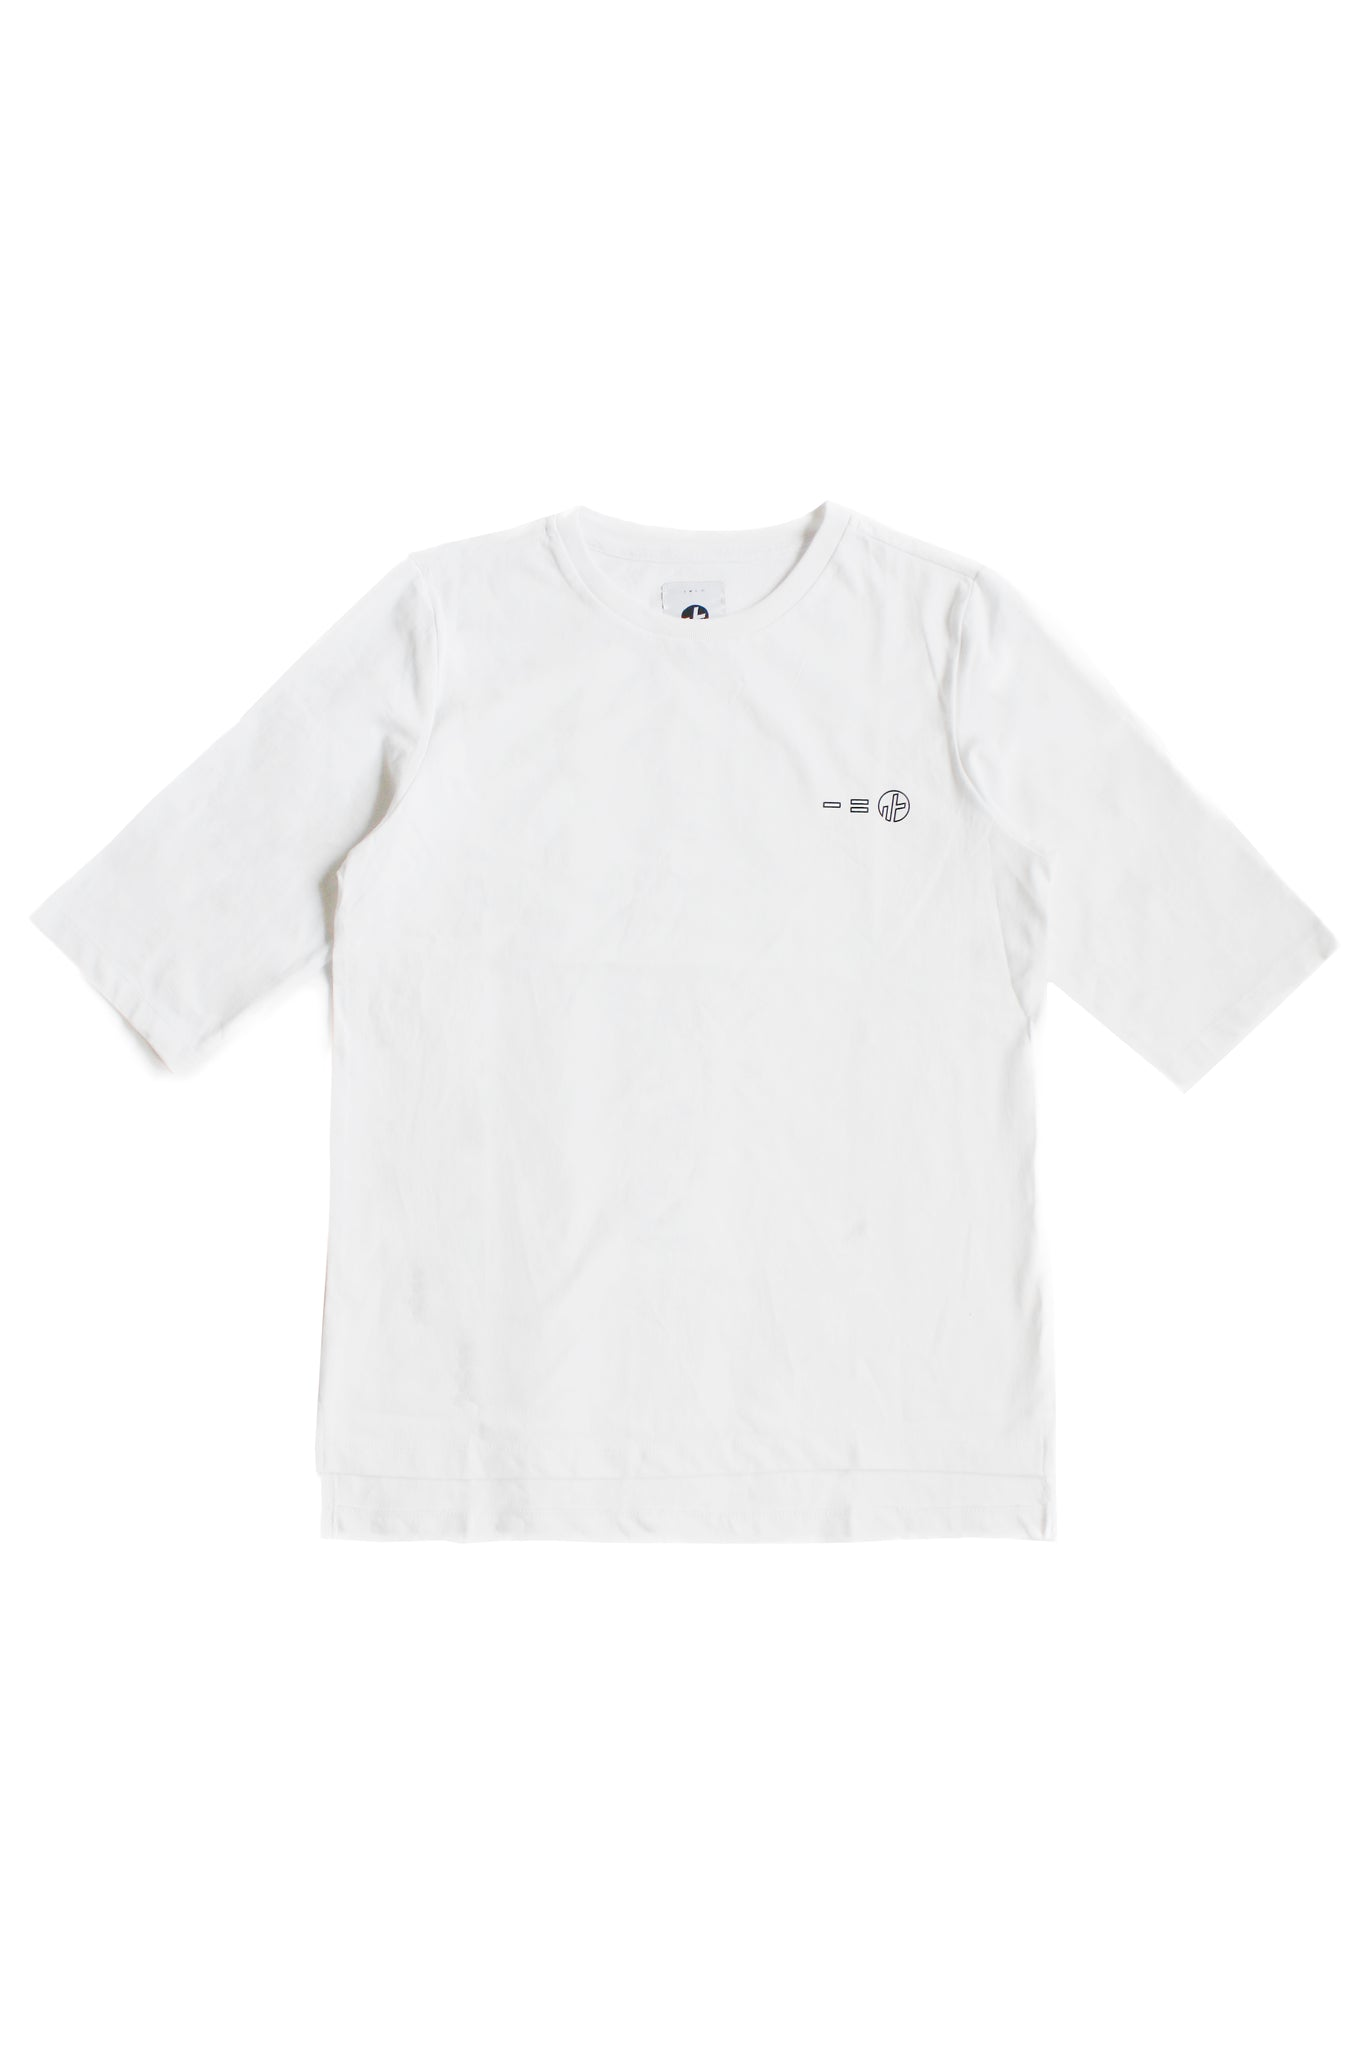 "3. ""LESS IS MORE"" 3/4 Sleeve Tee"